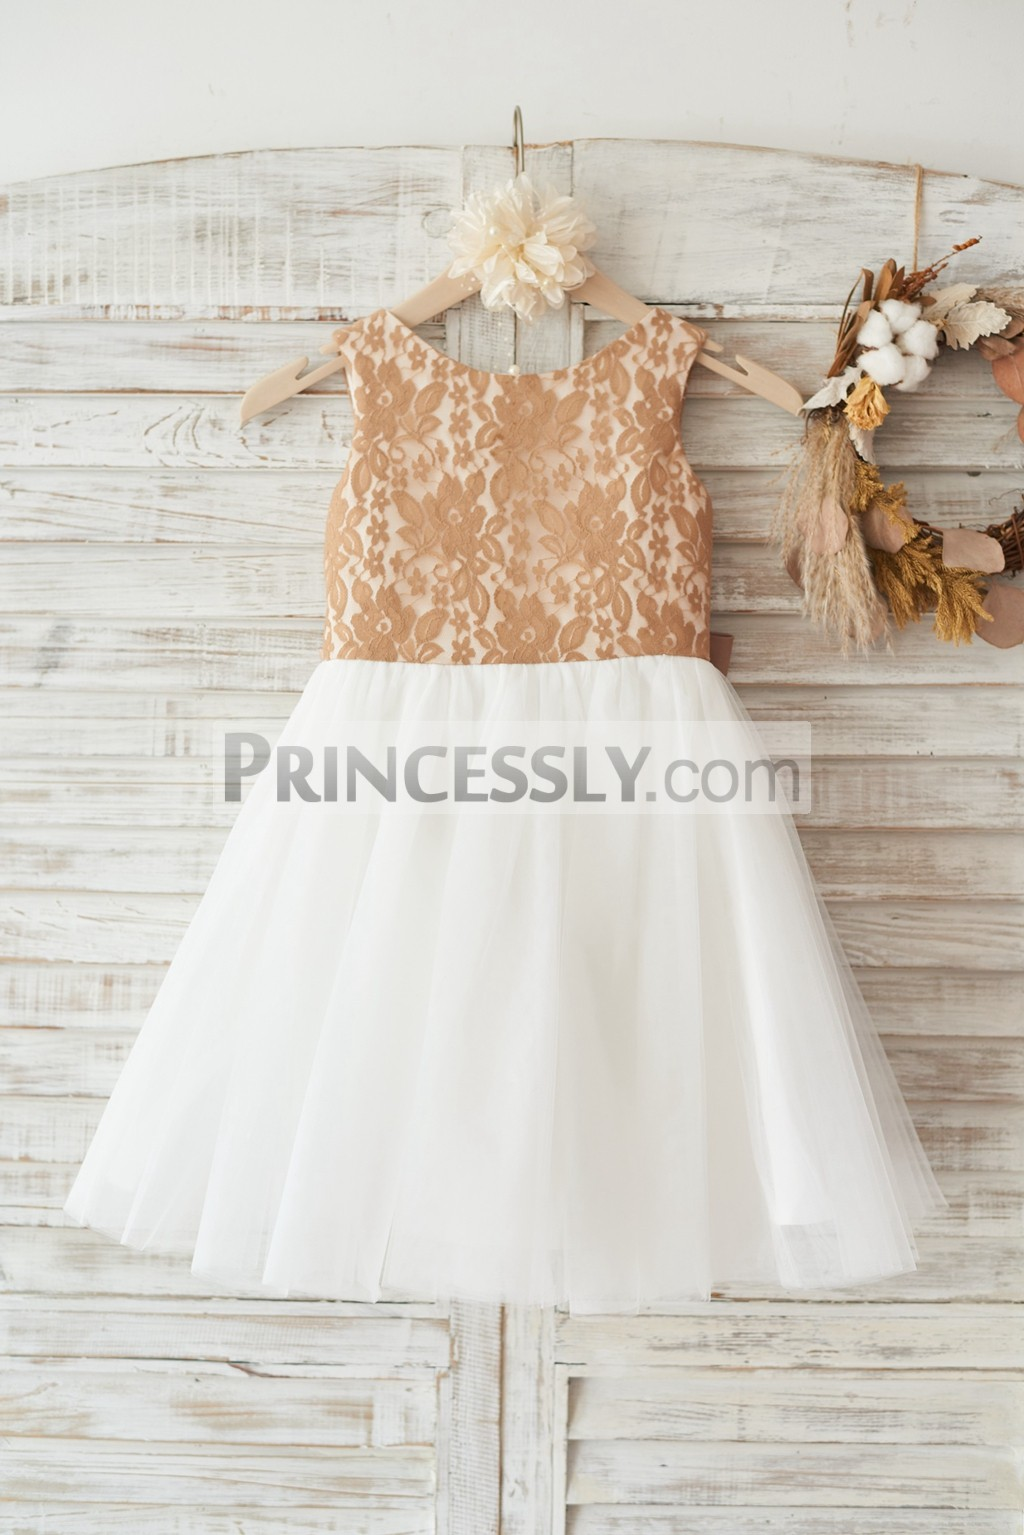 251269cbc5b Champagne Gold Lace Ivory Tulle Flower Girl Dress with Deep V Back ...